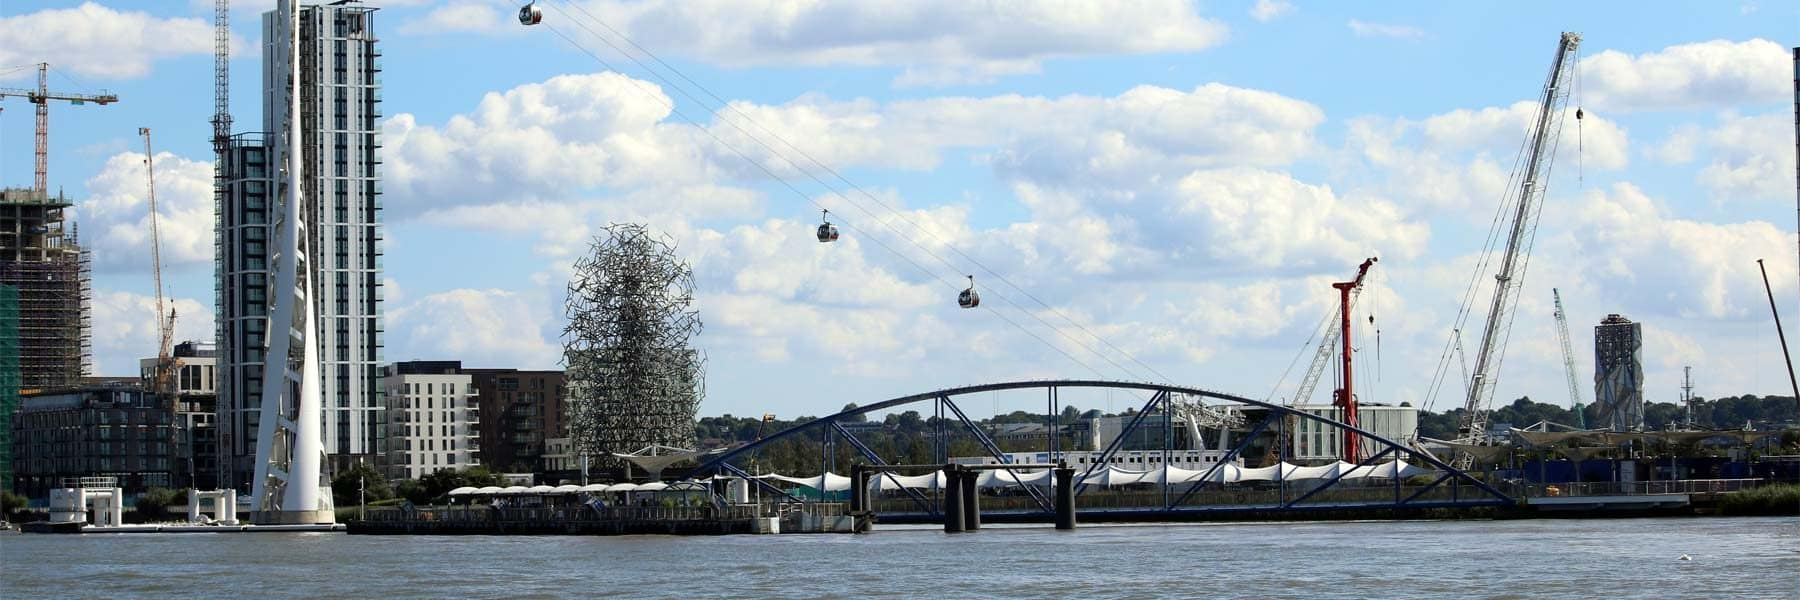 Emirates Airline Cable Car & North Greenwich